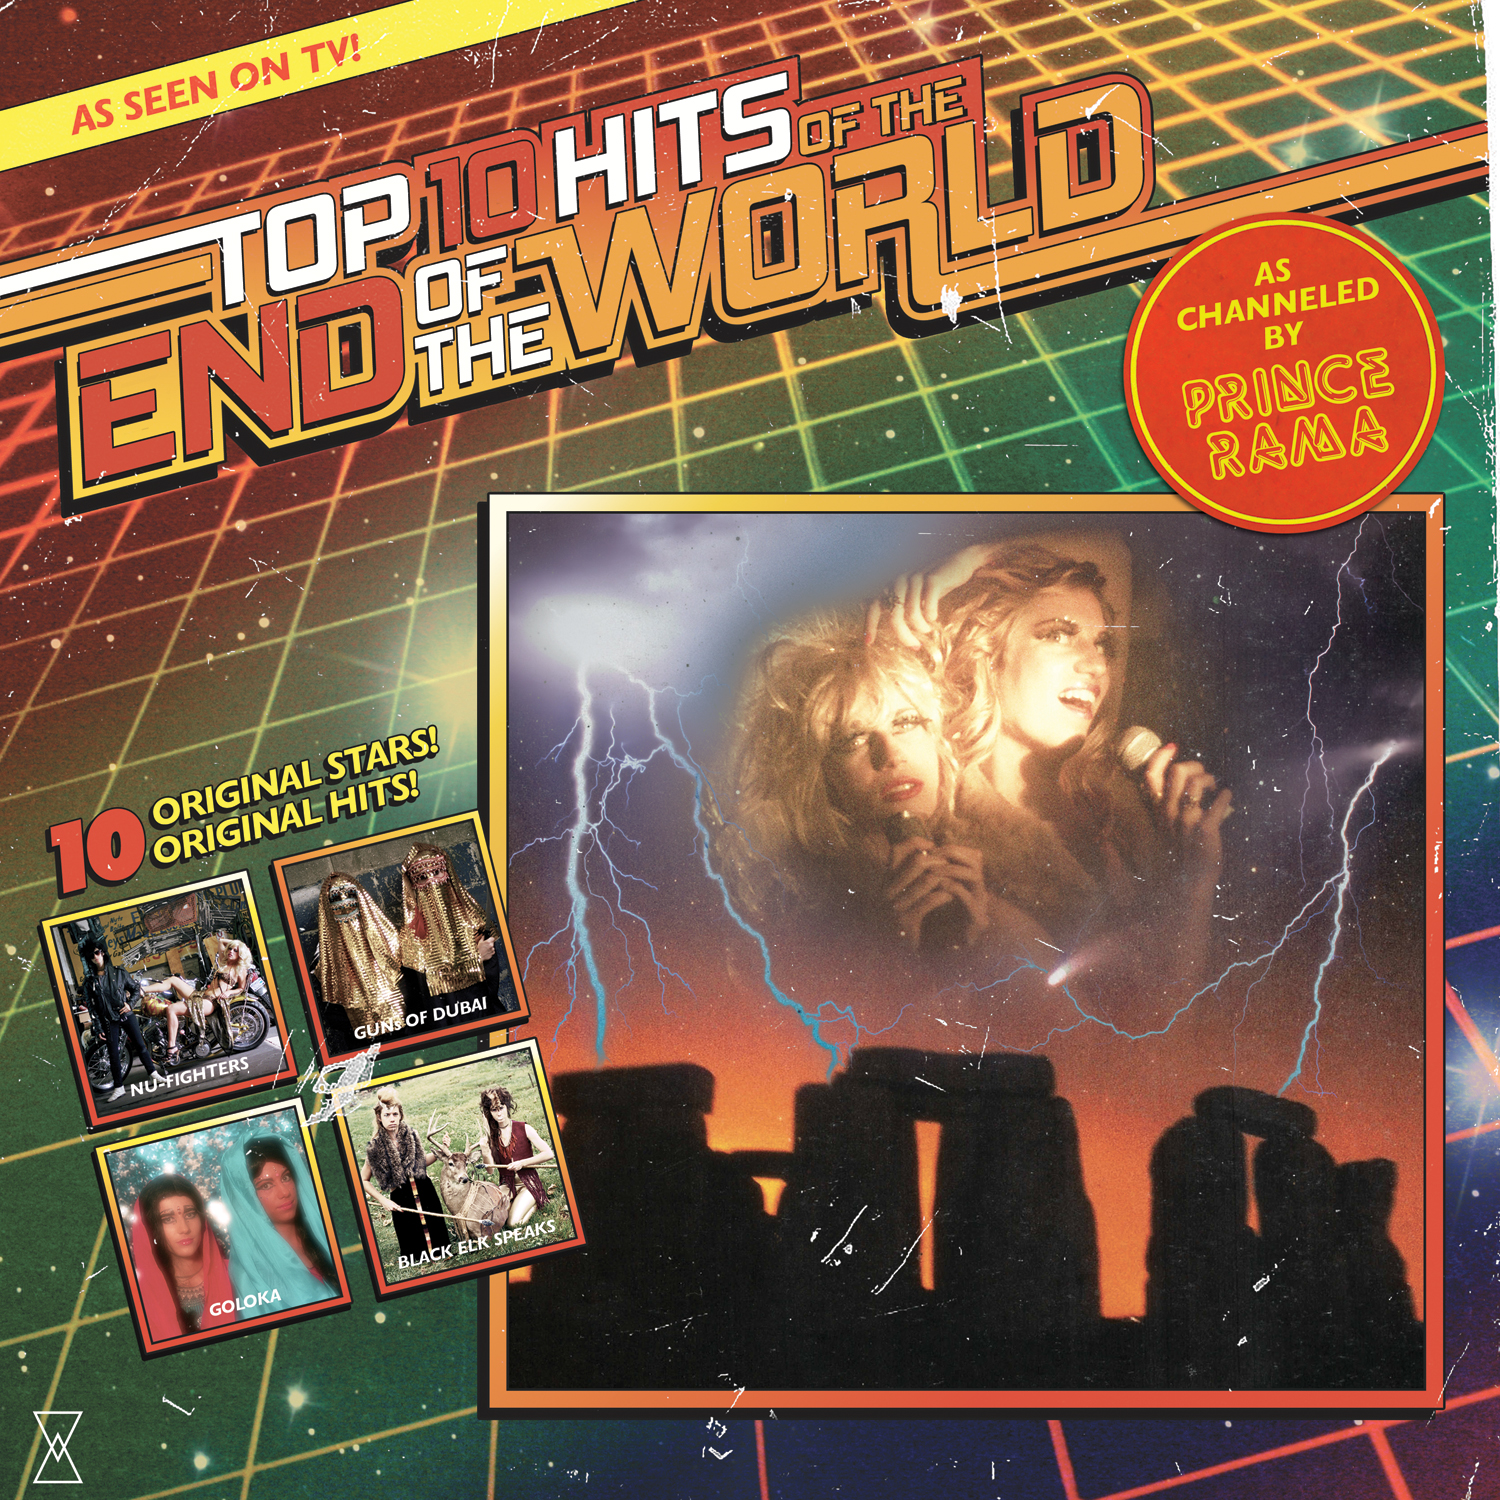 Review: Prince Rama ‒ Top 10 Hits of the End of the World